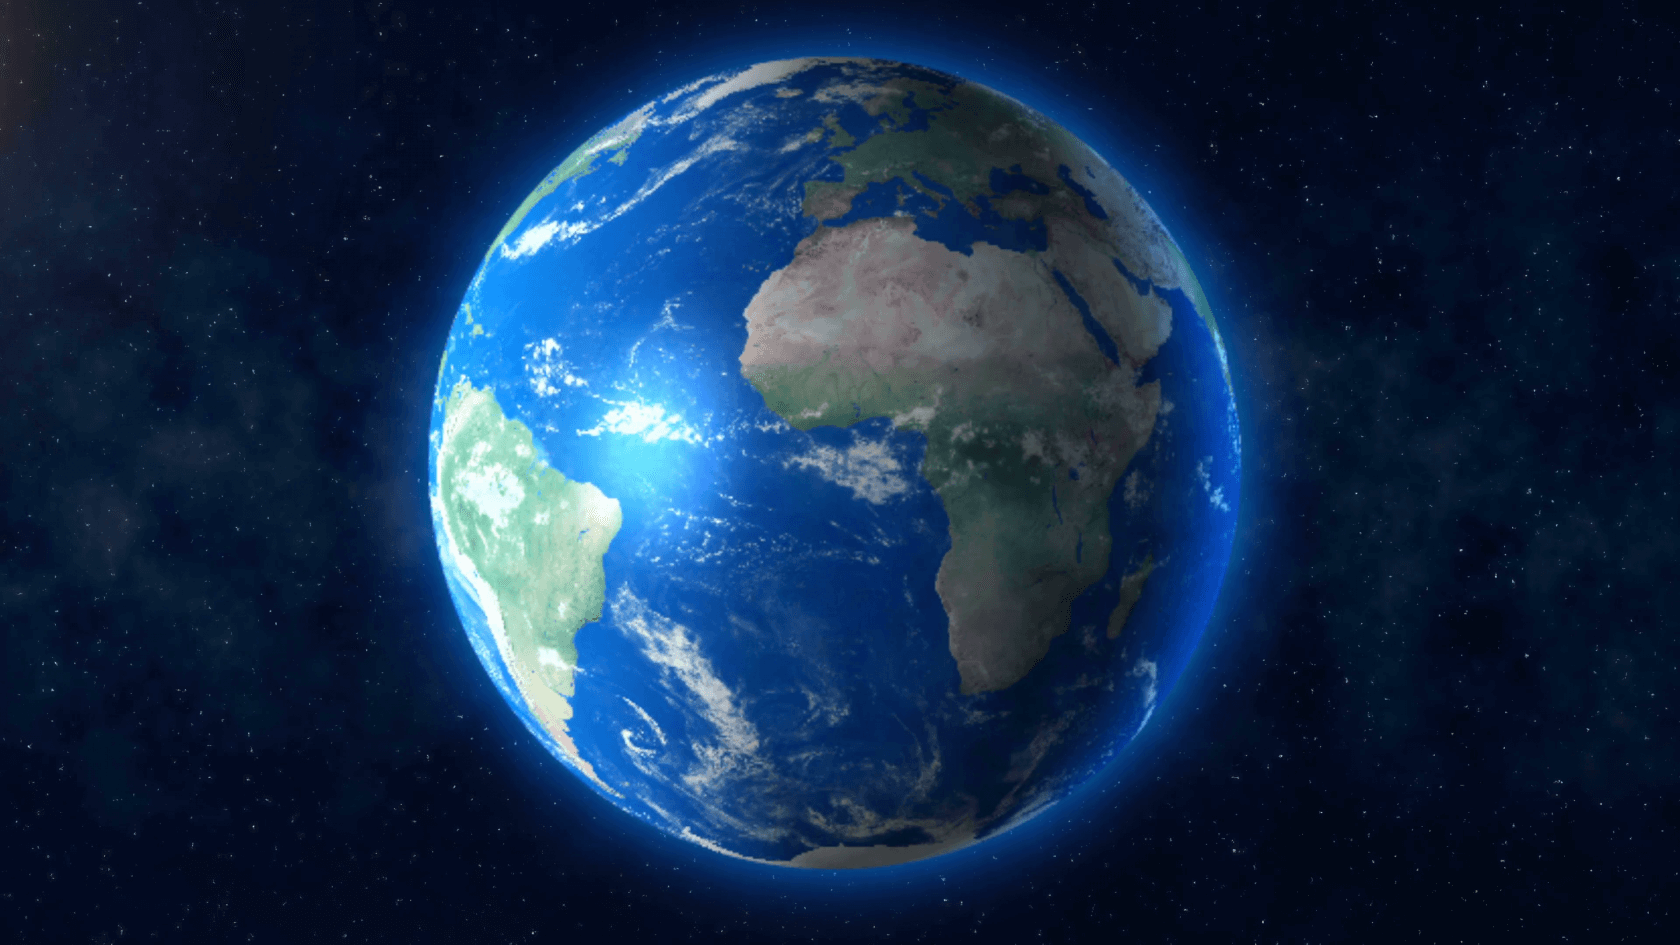 Google Earths Latest Tools Let Users Create And Share Maps Or